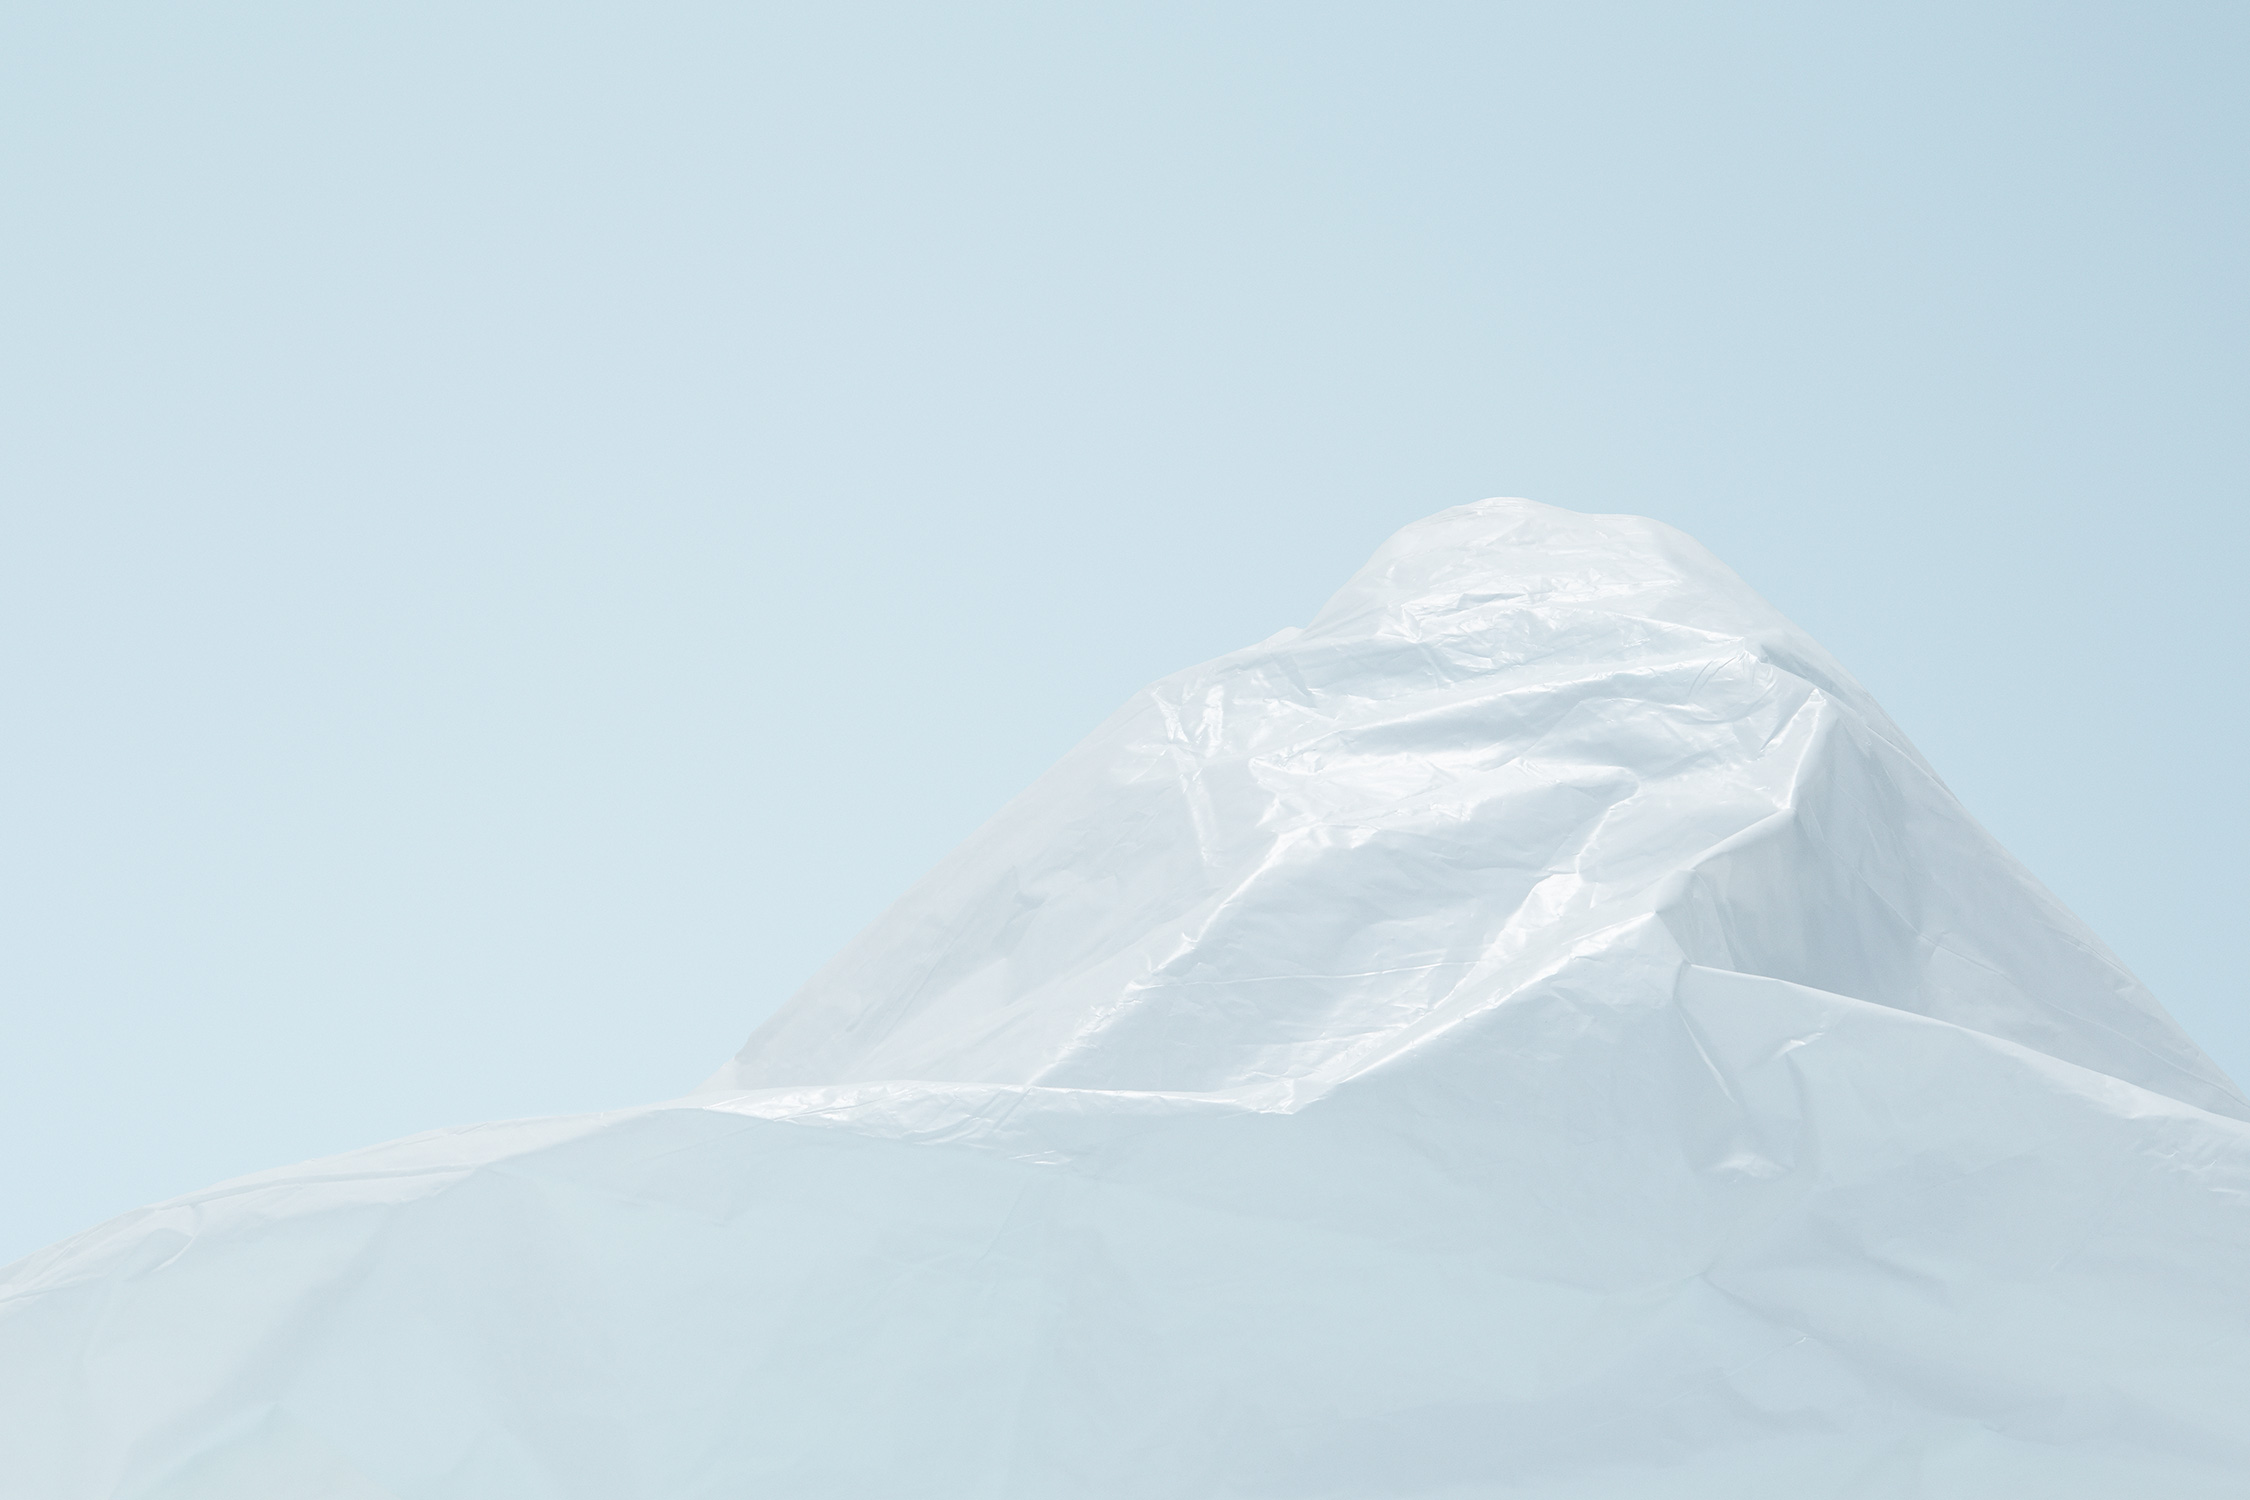 20160317_Plastic_mountains_1999_FRONT_01a_FLAT.jpg